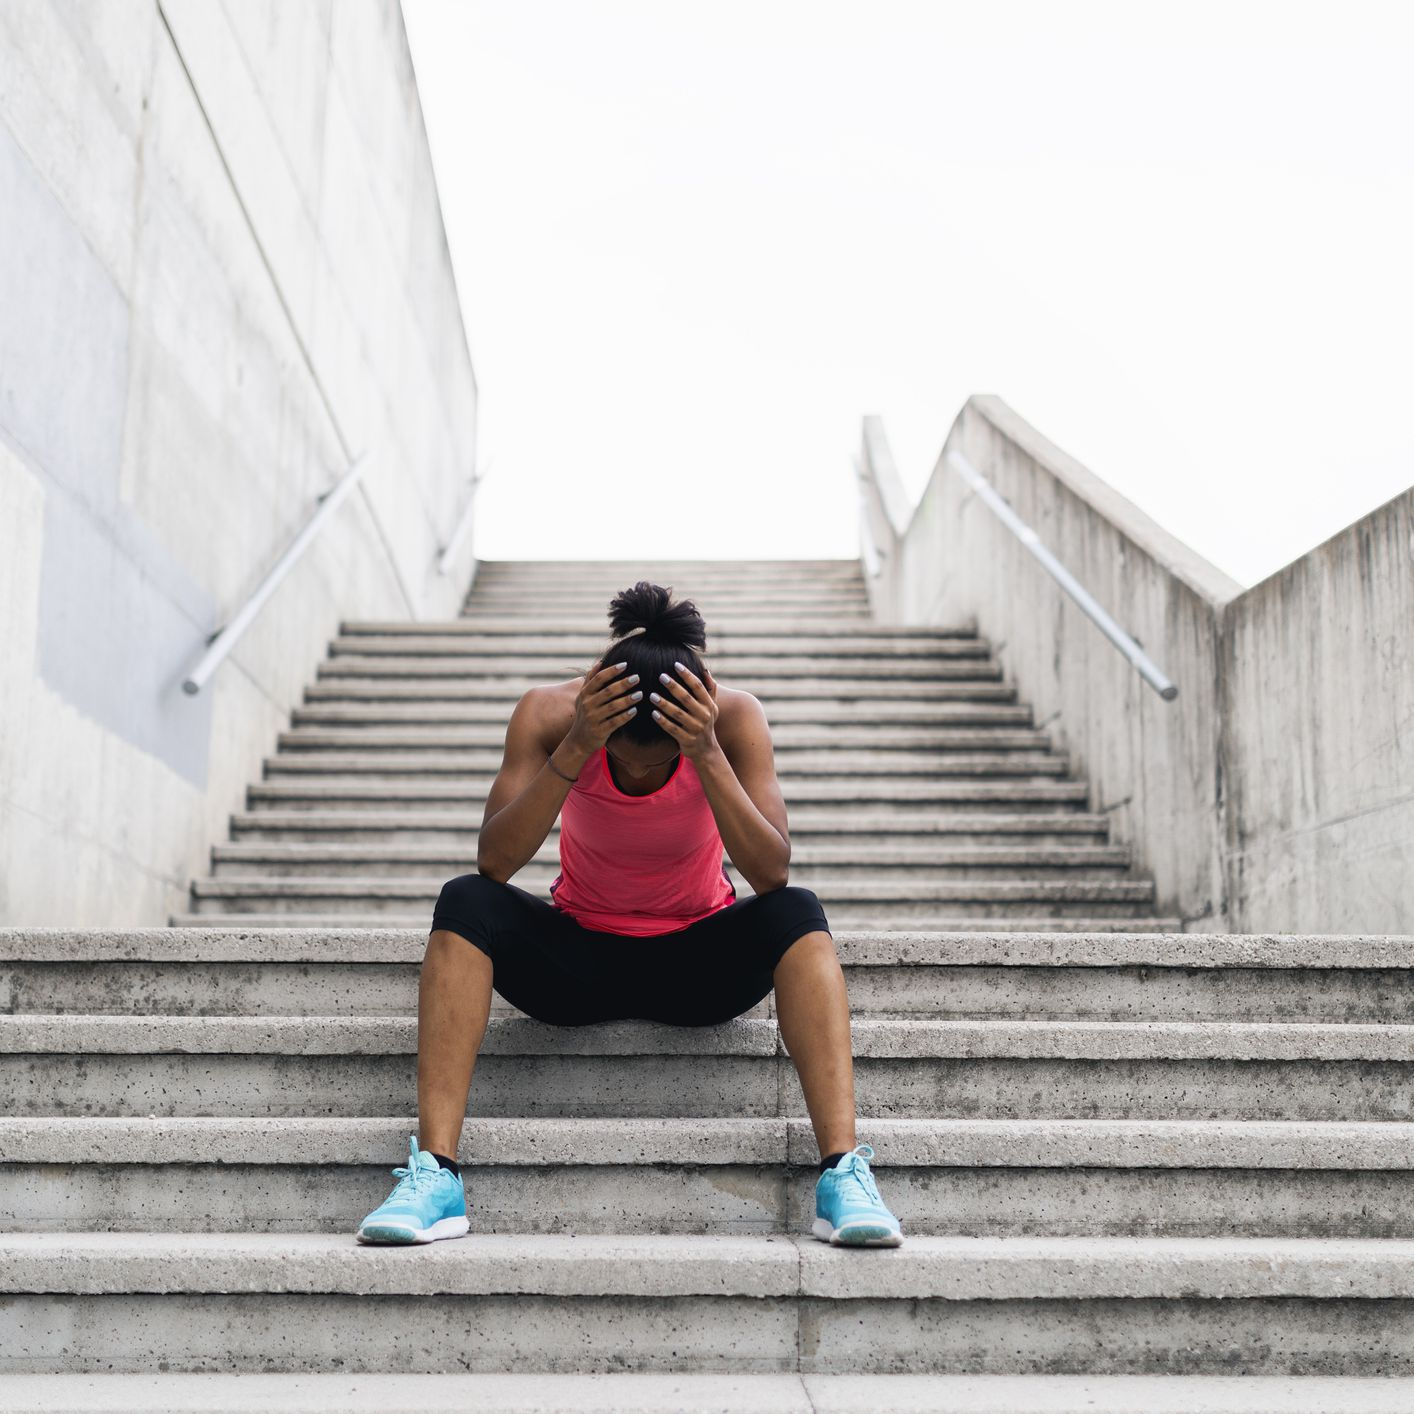 Why You Might Feel Nauseous at the End of a Run